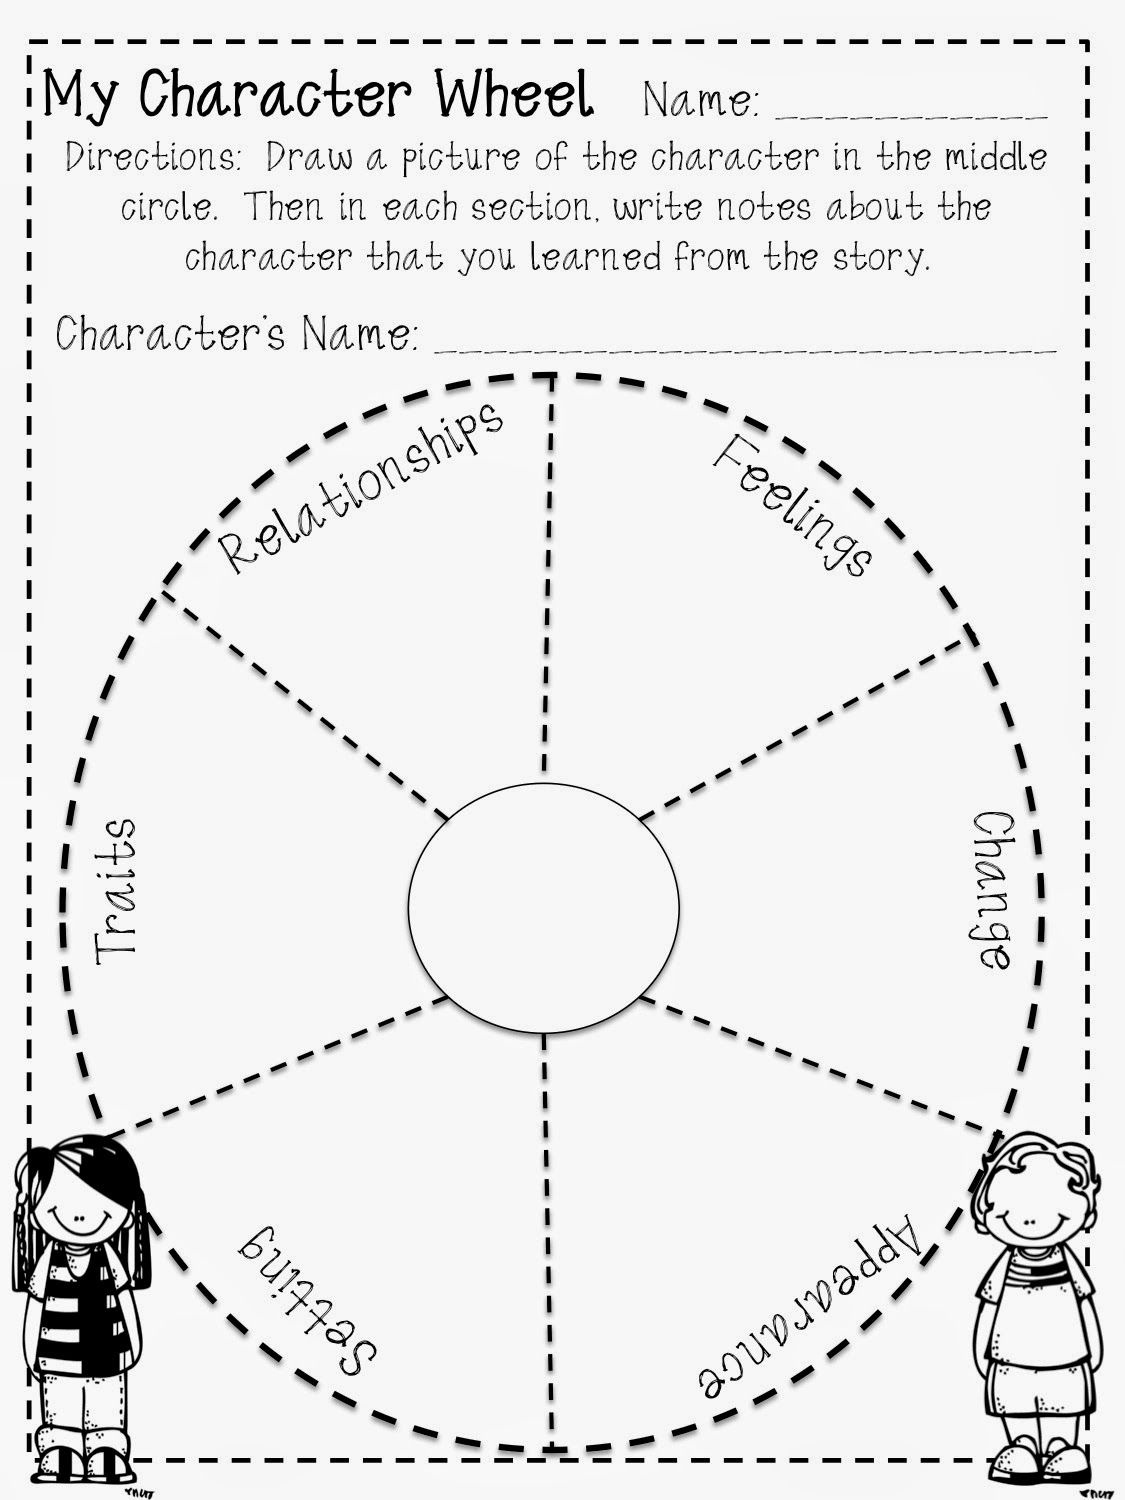 Fun Character Wheel Printable For Any Book! Free!   Teaching 4/5 - Free Printable Character Map